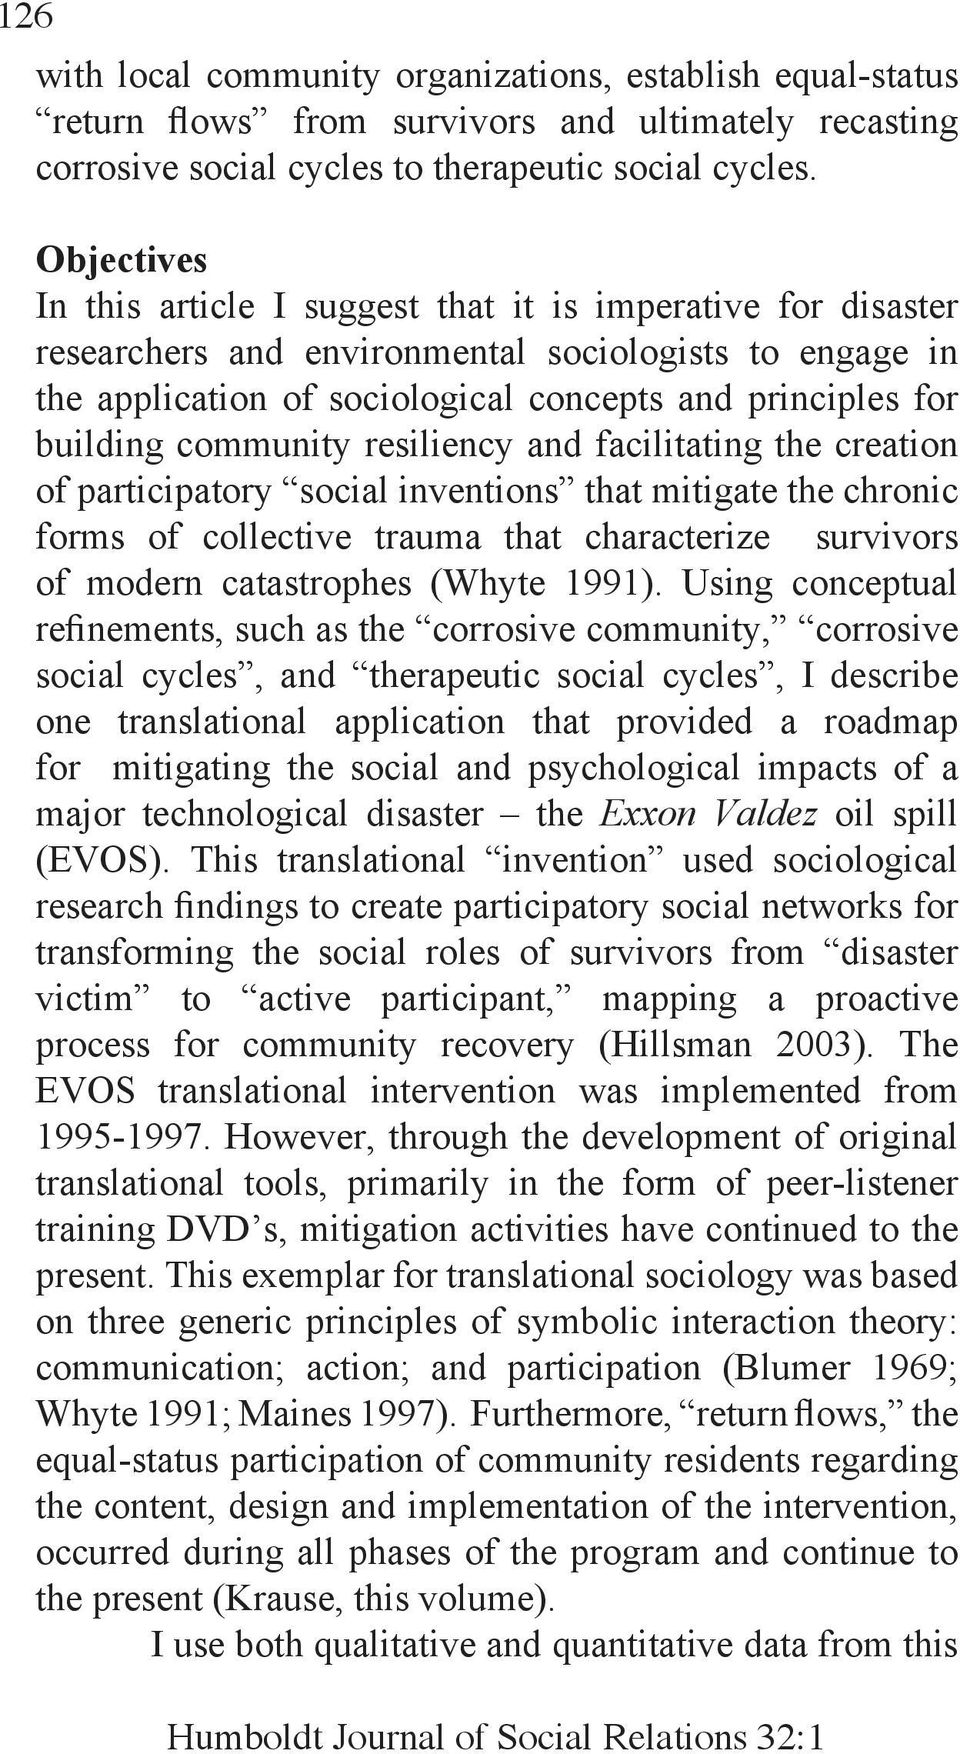 community resiliency and facilitating the creation of participatory social inventions that mitigate the chronic forms of collective trauma that characterize survivors of modern catastrophes (Whyte